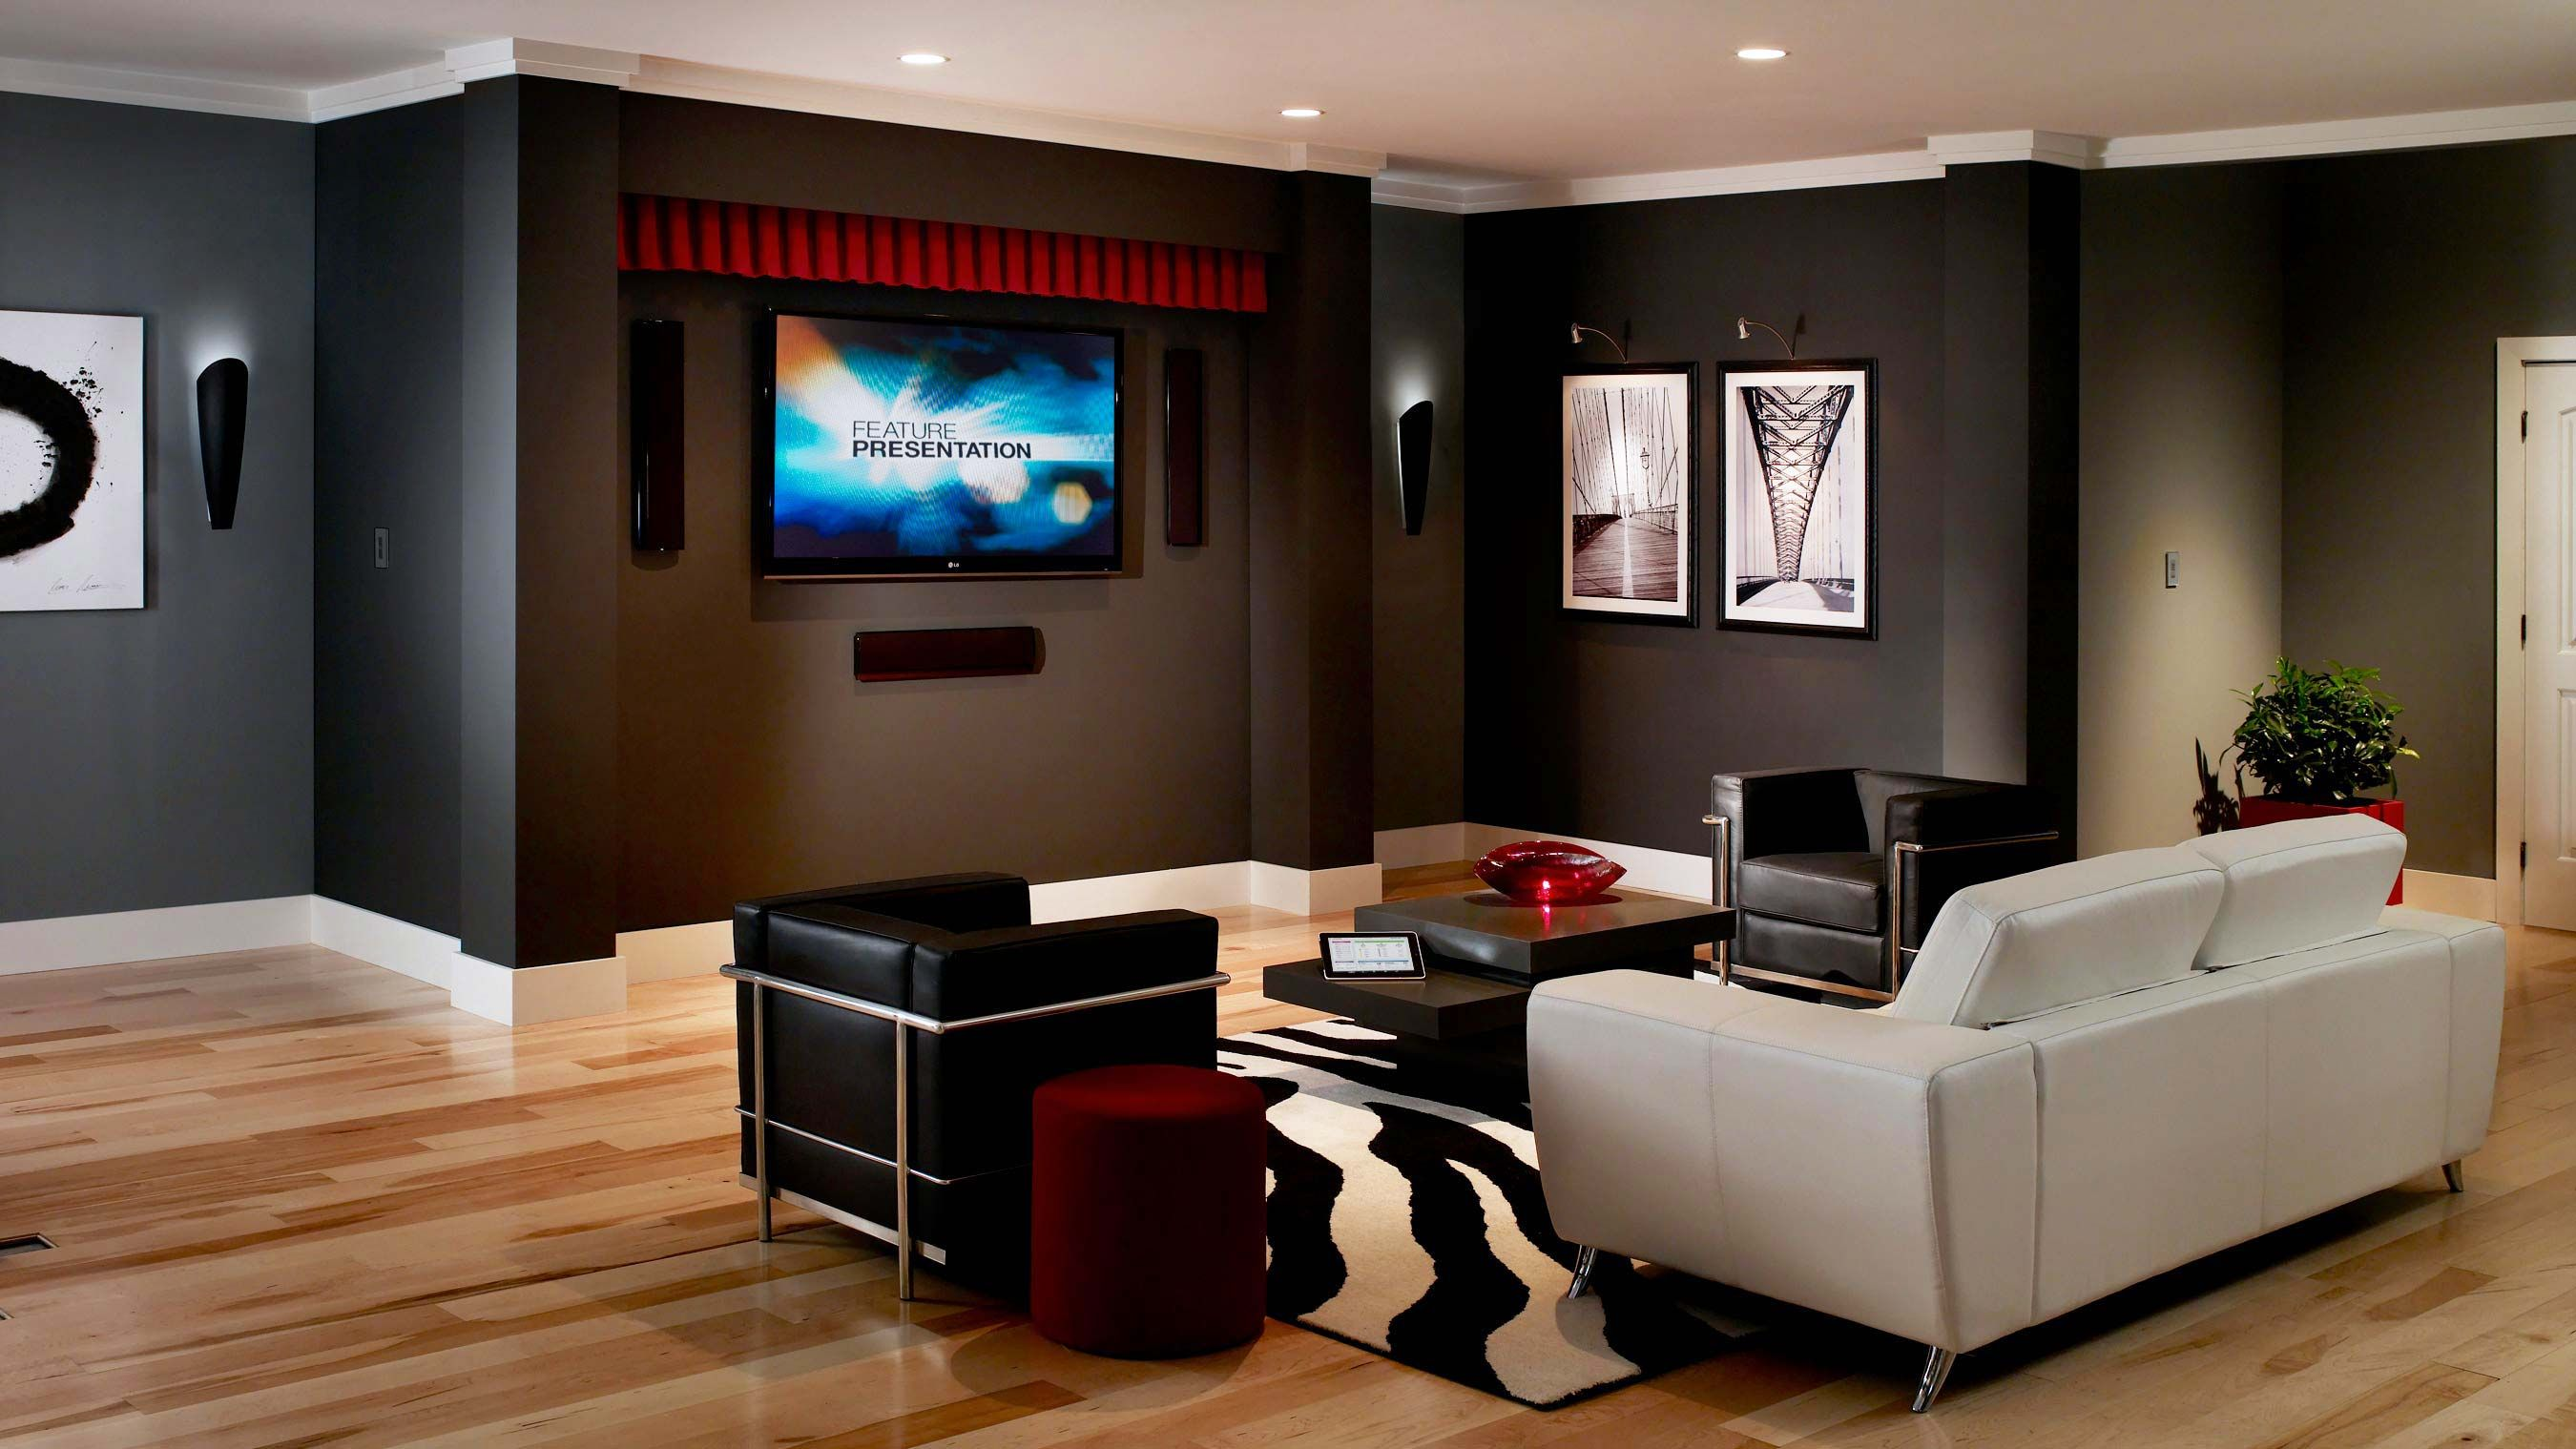 Control4 Dealer Austin, TX, home control, indoor automation, home automation, media room, high-performance audio, smart home control4